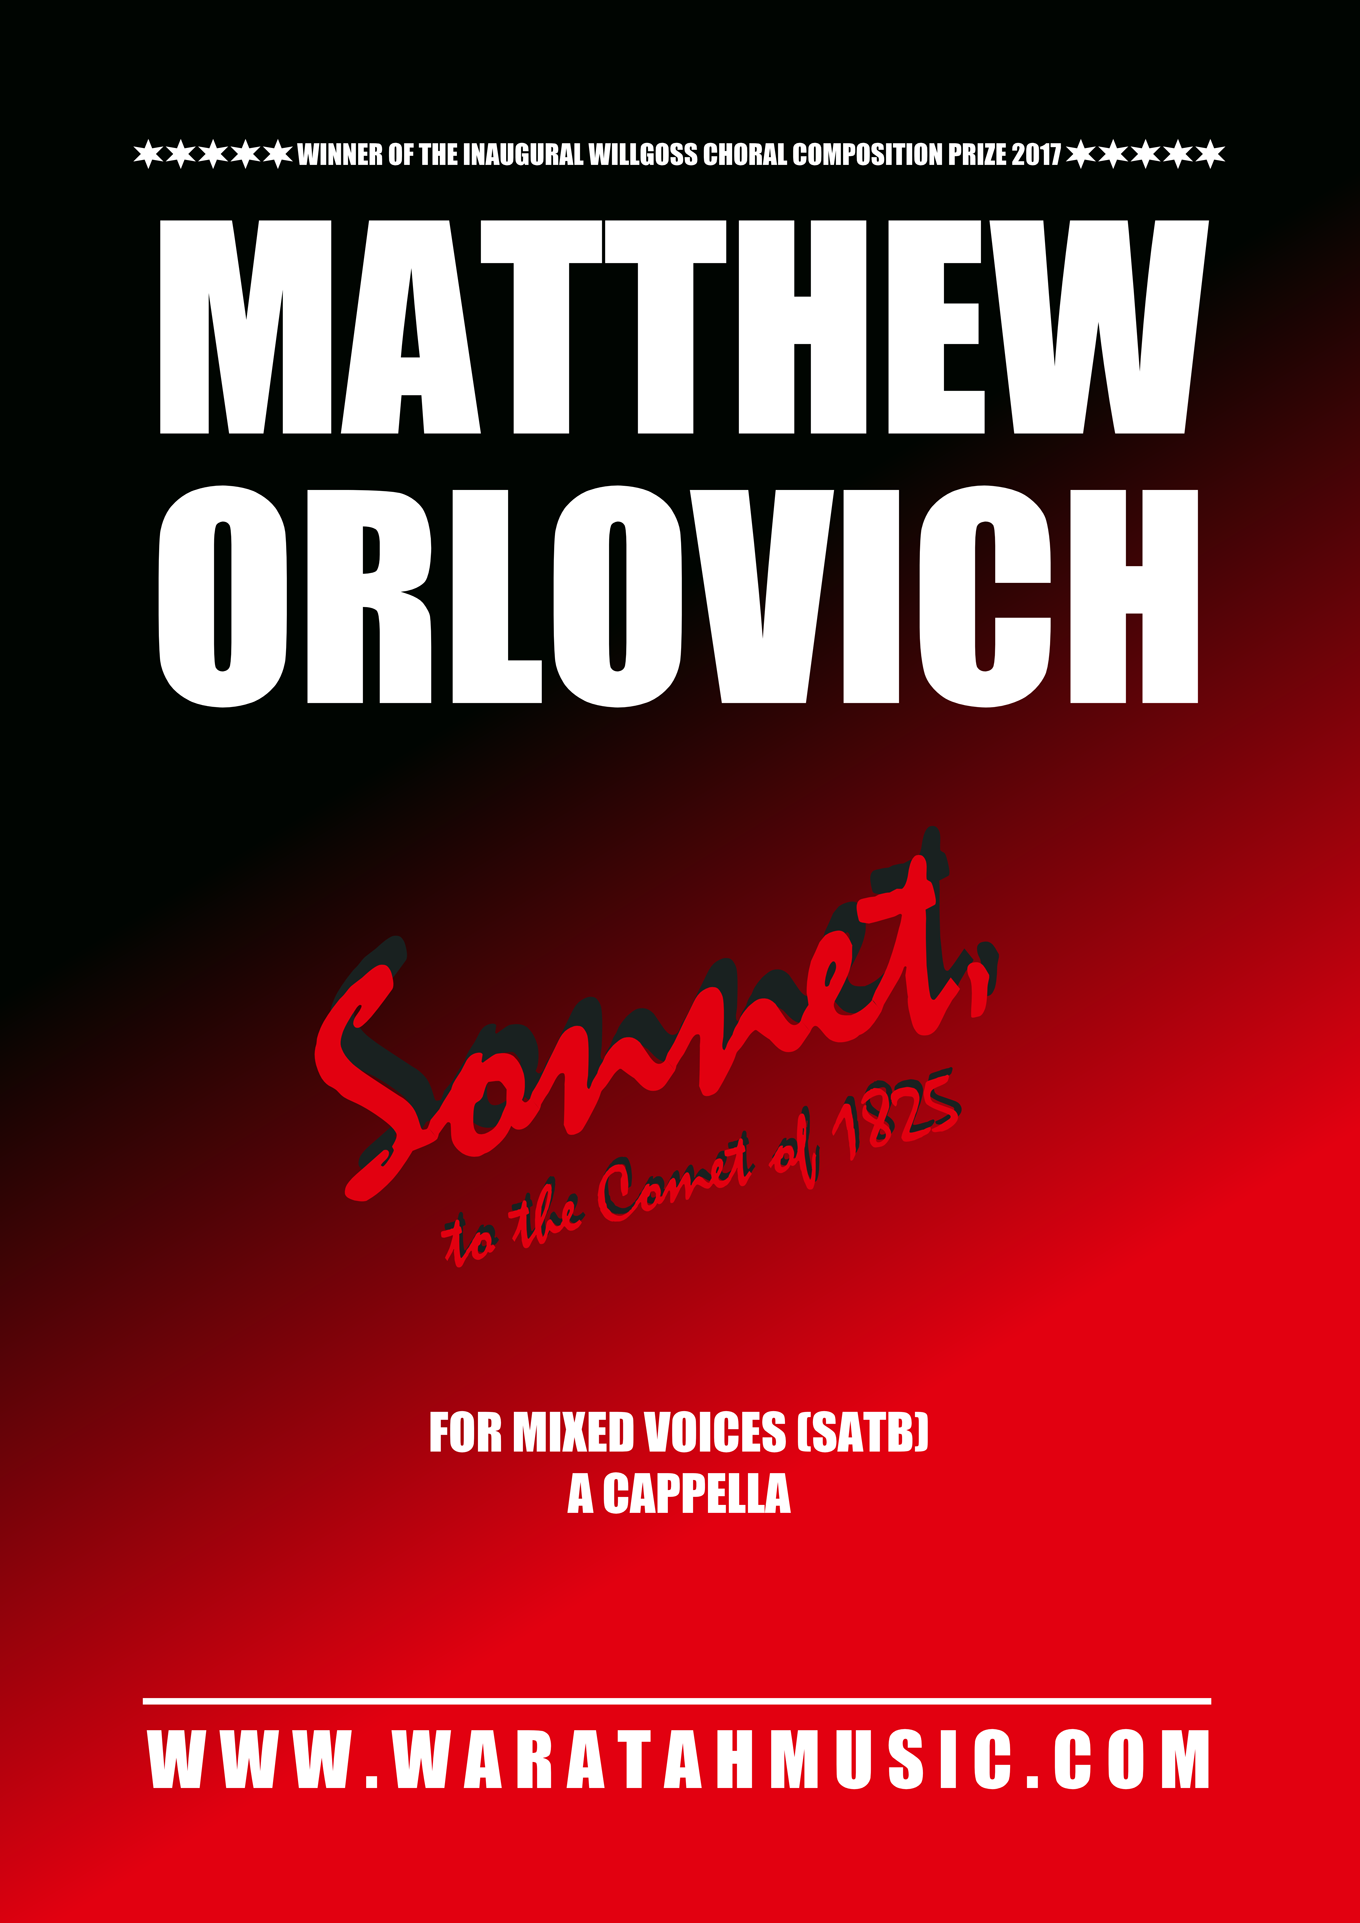 Sonnet, to the Comet of 1825 – By Matthew Orlovich – for Mixed Voices (SATB), a cappella.